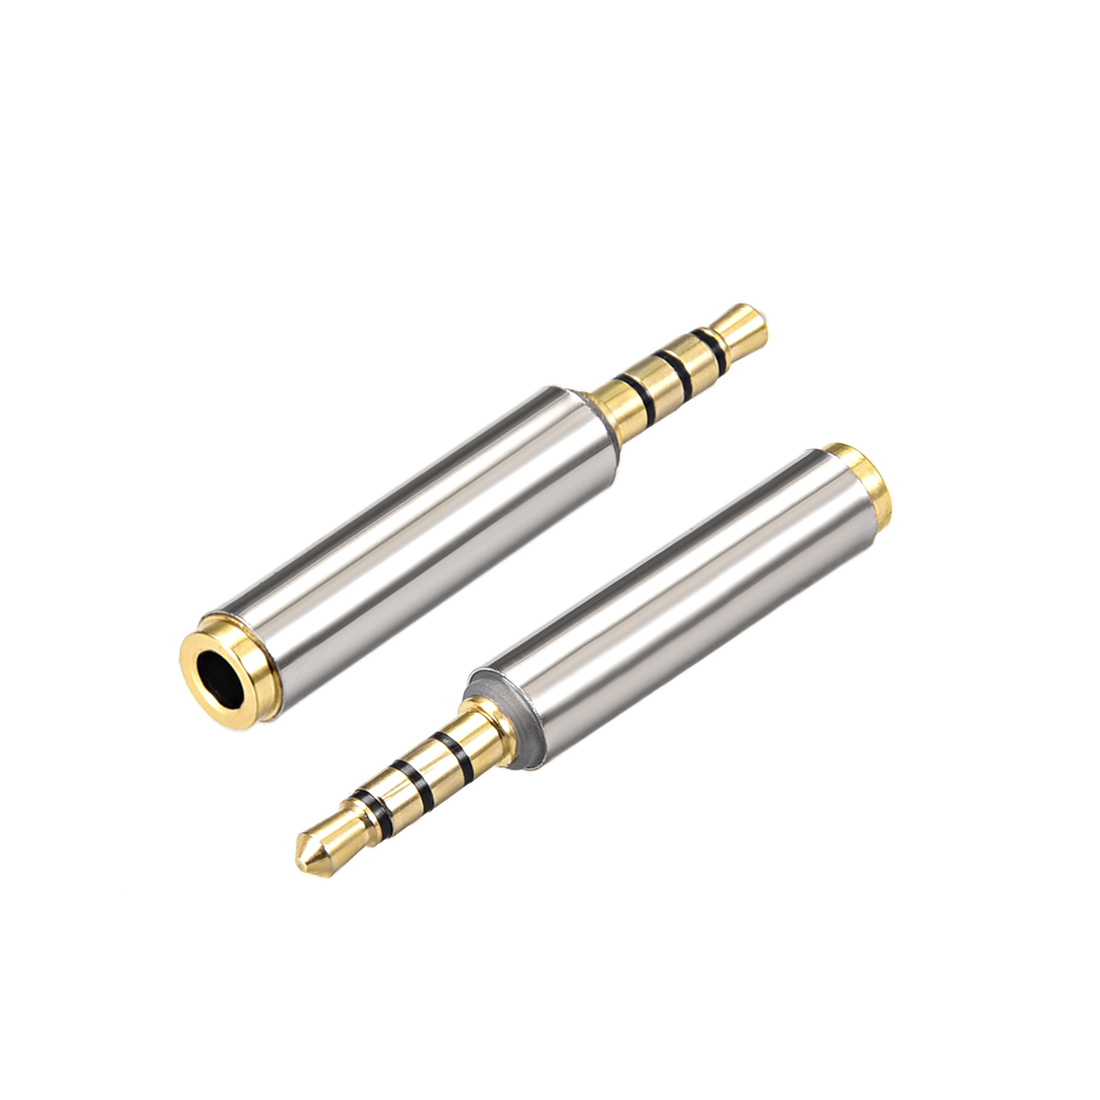 3.5mm Stereo 4 Poles Male to 3.5mm Female Adapter Converters Zinc Alloy 2 Pcs